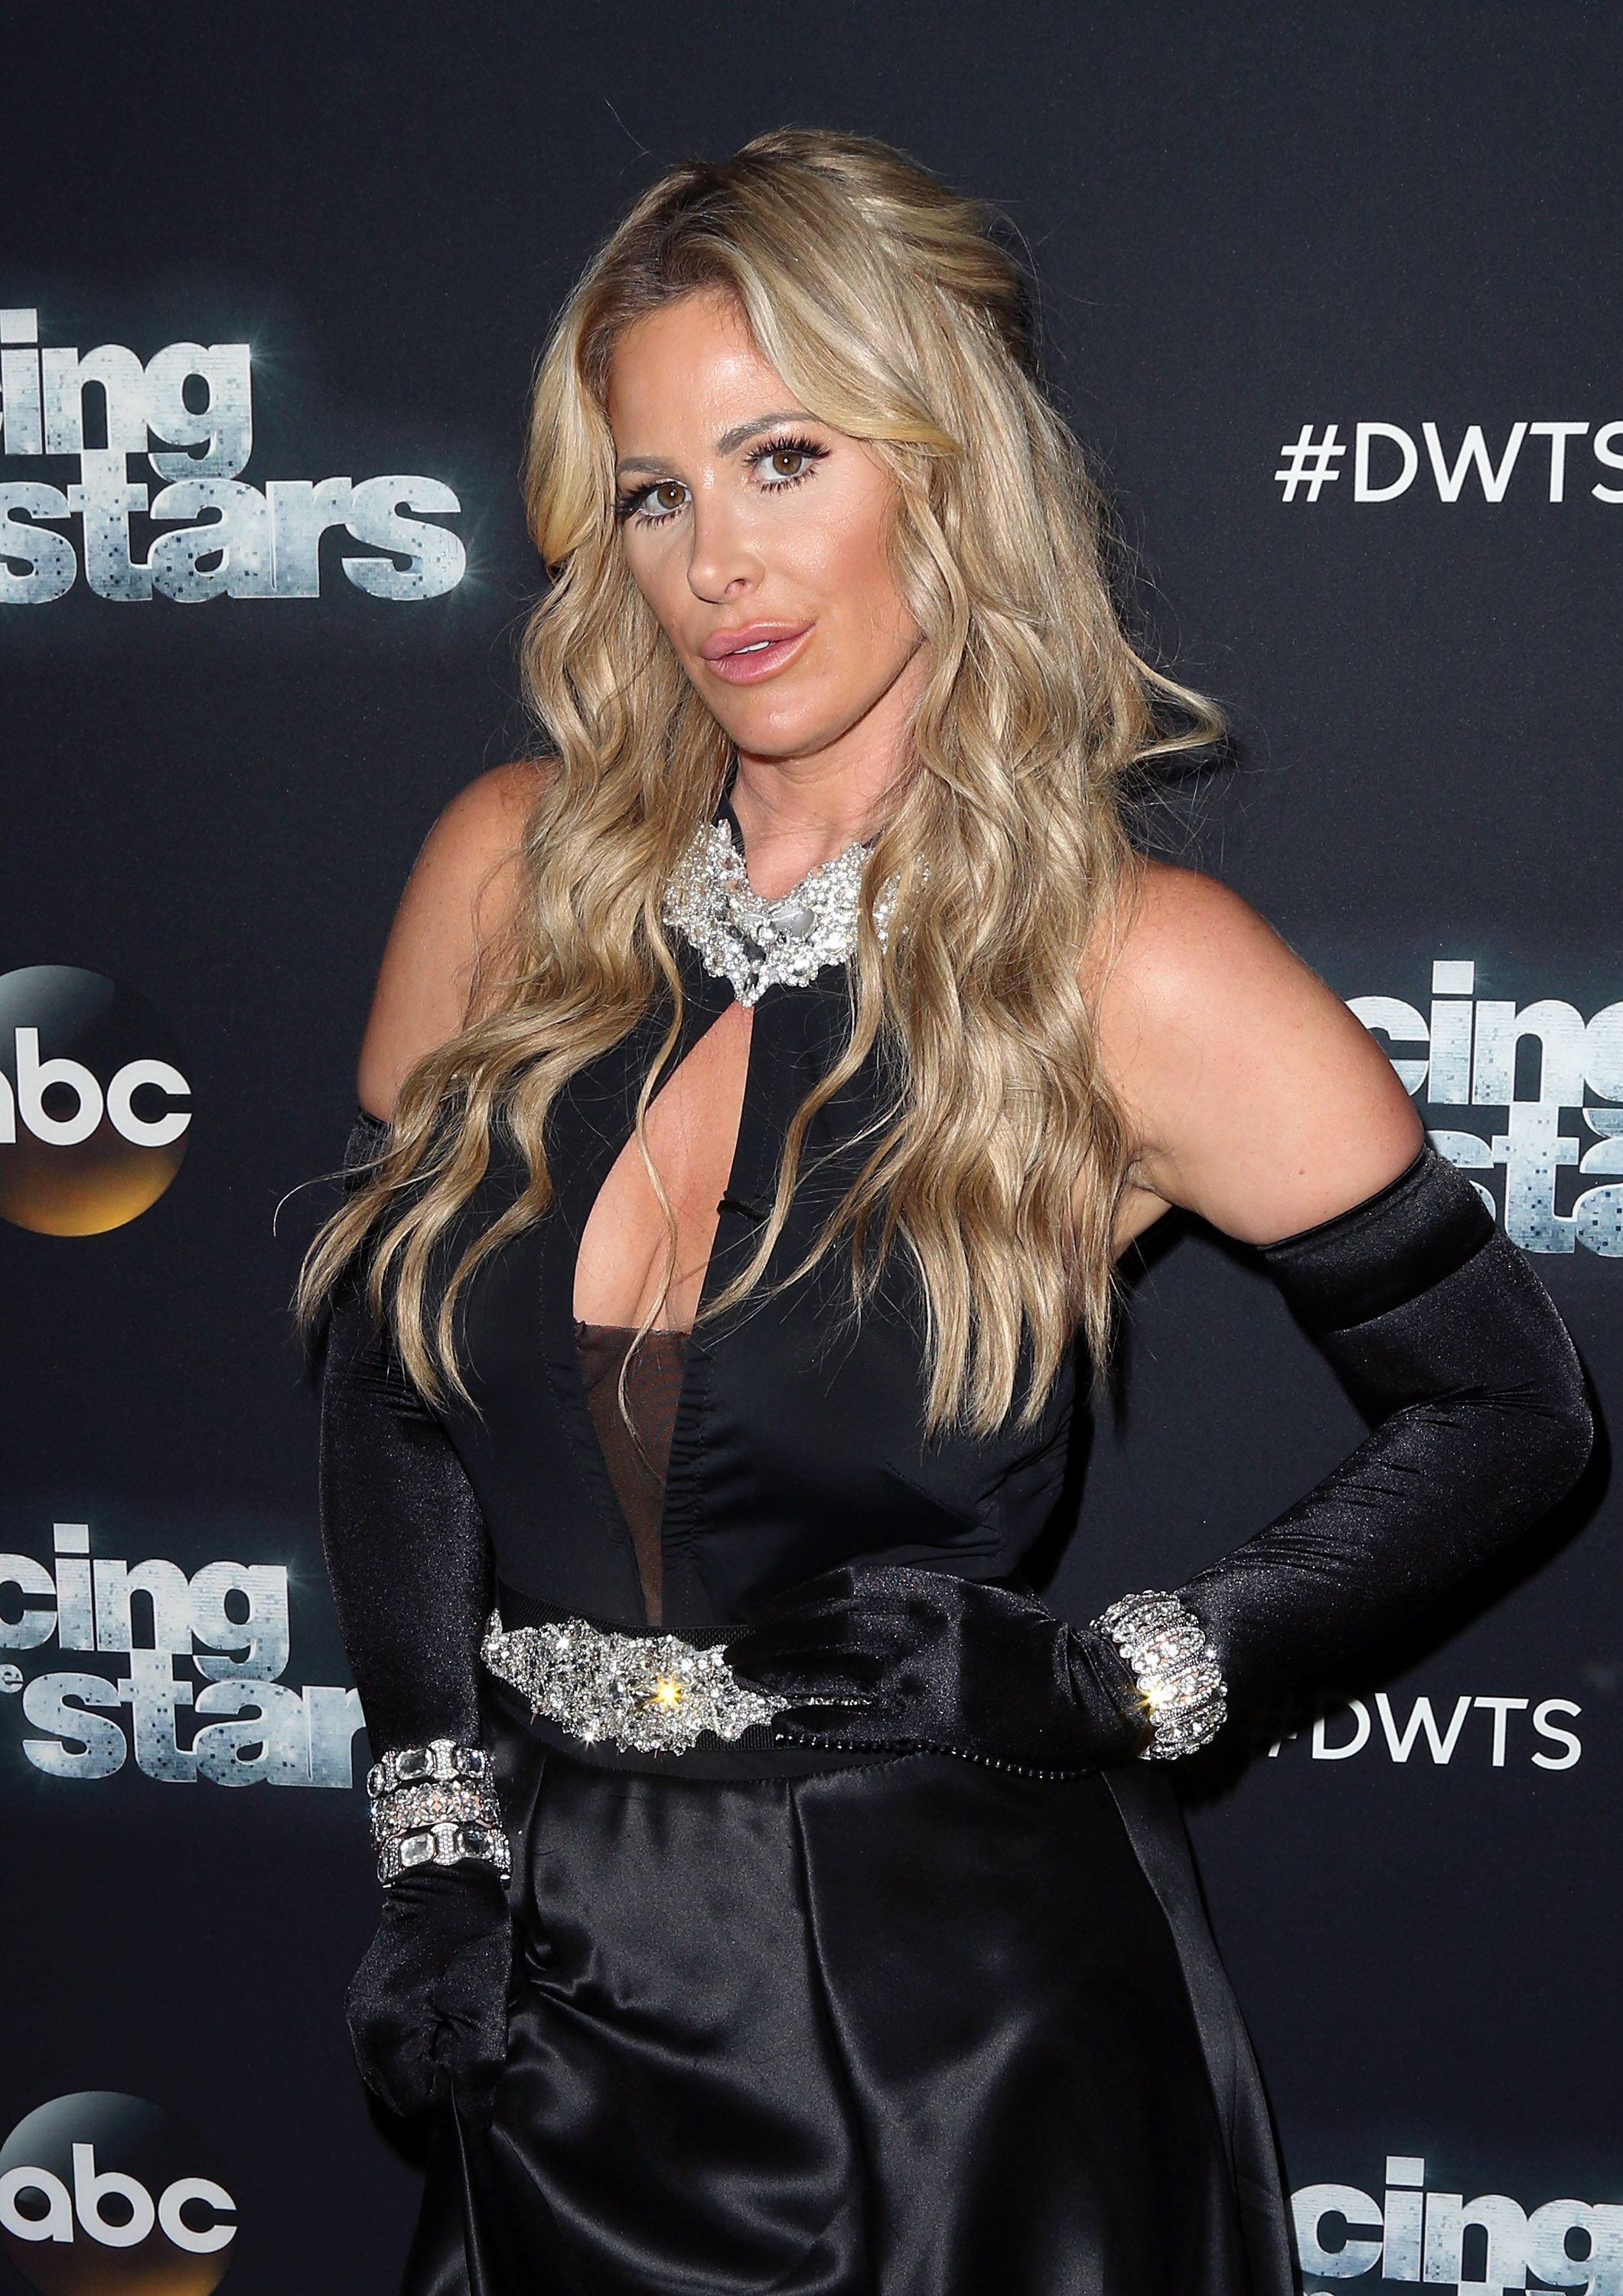 LOS ANGELES, CA - SEPTEMBER 21:  TV personality Kim Zolciak Biermann attends 'Dancing with the Stars' Season 21 at CBS Televison City on September 21, 2015 in Los Angeles, California.  (Photo by David Livingston/Getty Images)